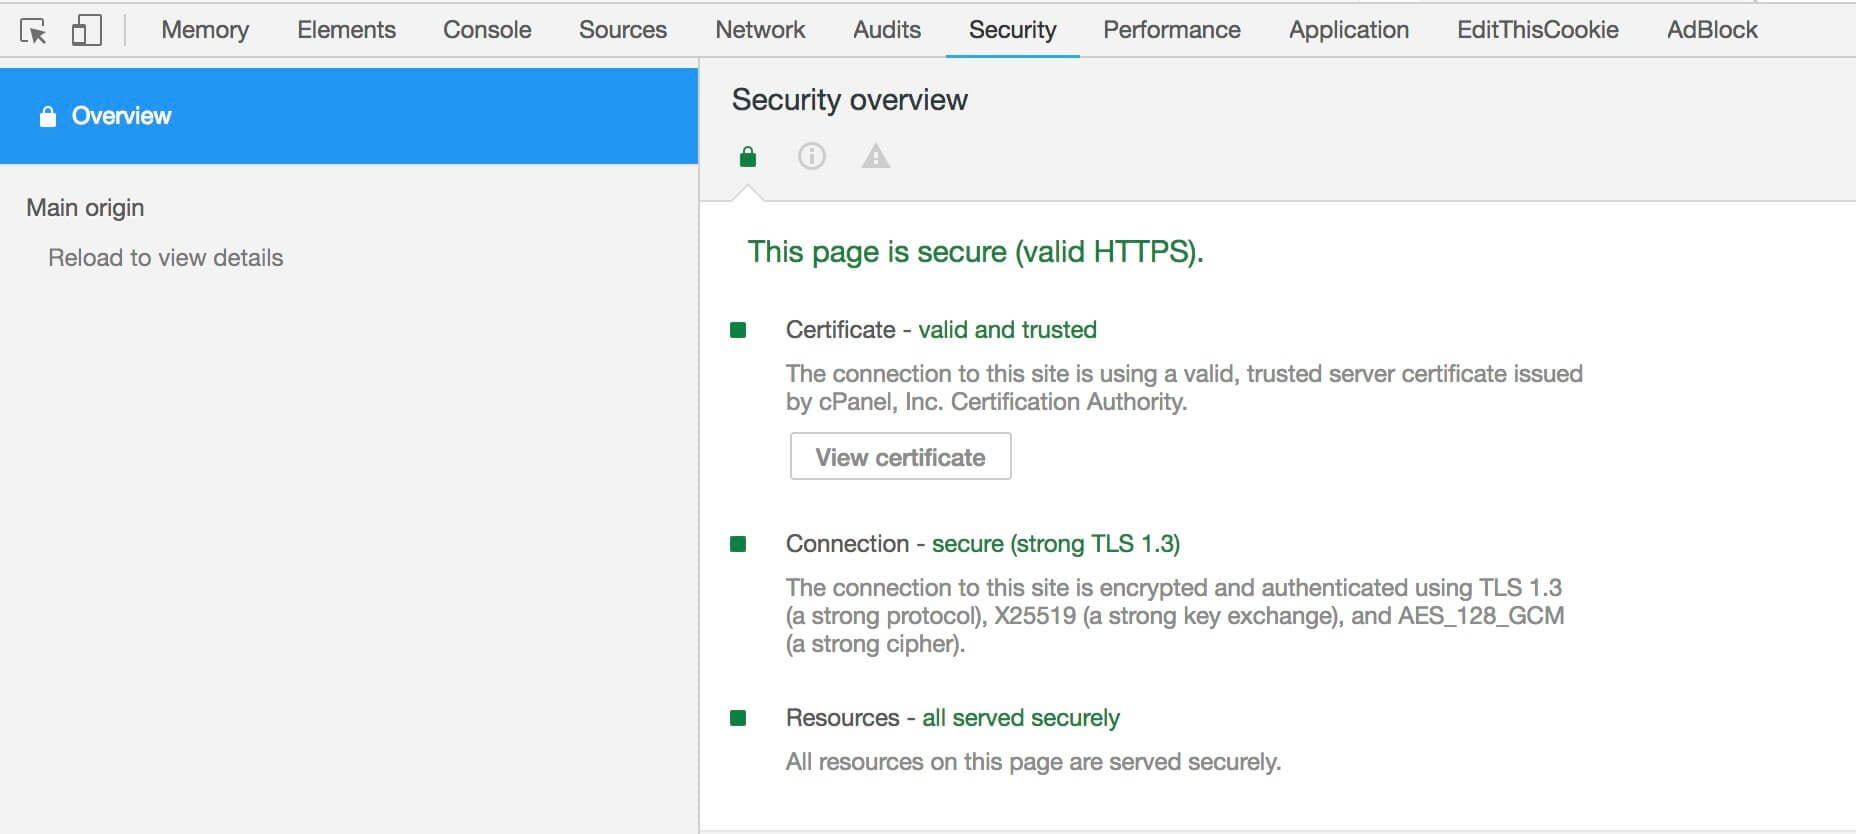 מעבר ל HTTPS - כרום Security Overview